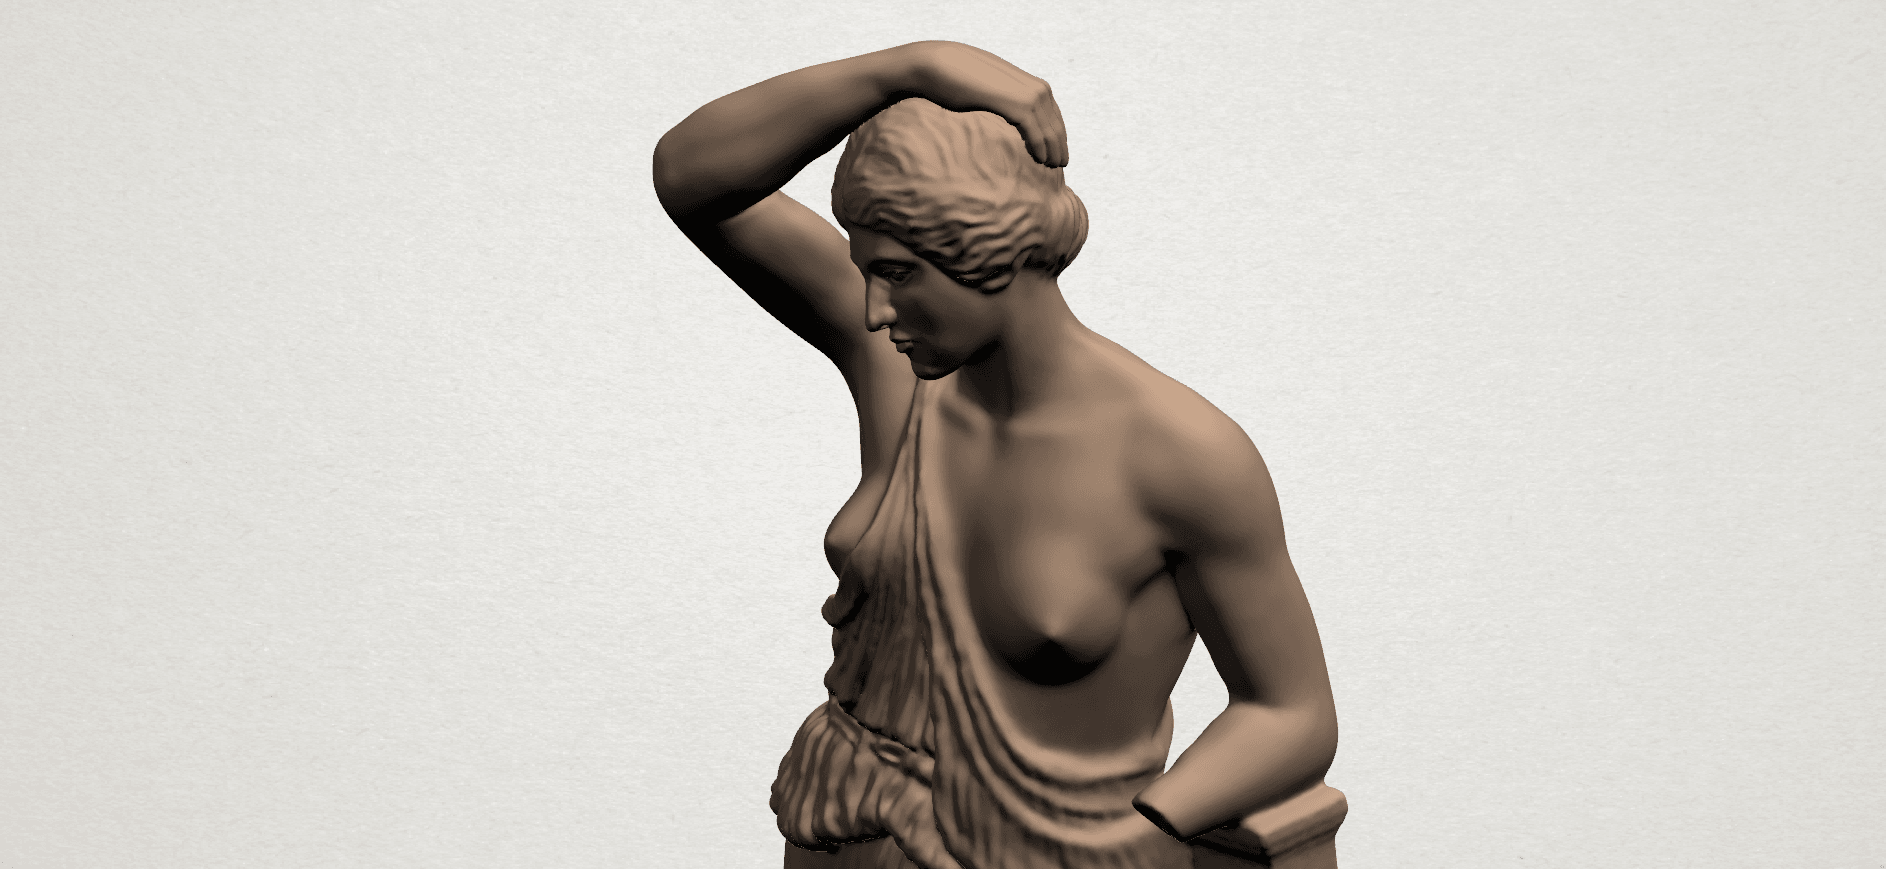 Naked Girl (x) A10.png Download free STL file Naked Girl 10 • 3D printing model, GeorgesNikkei